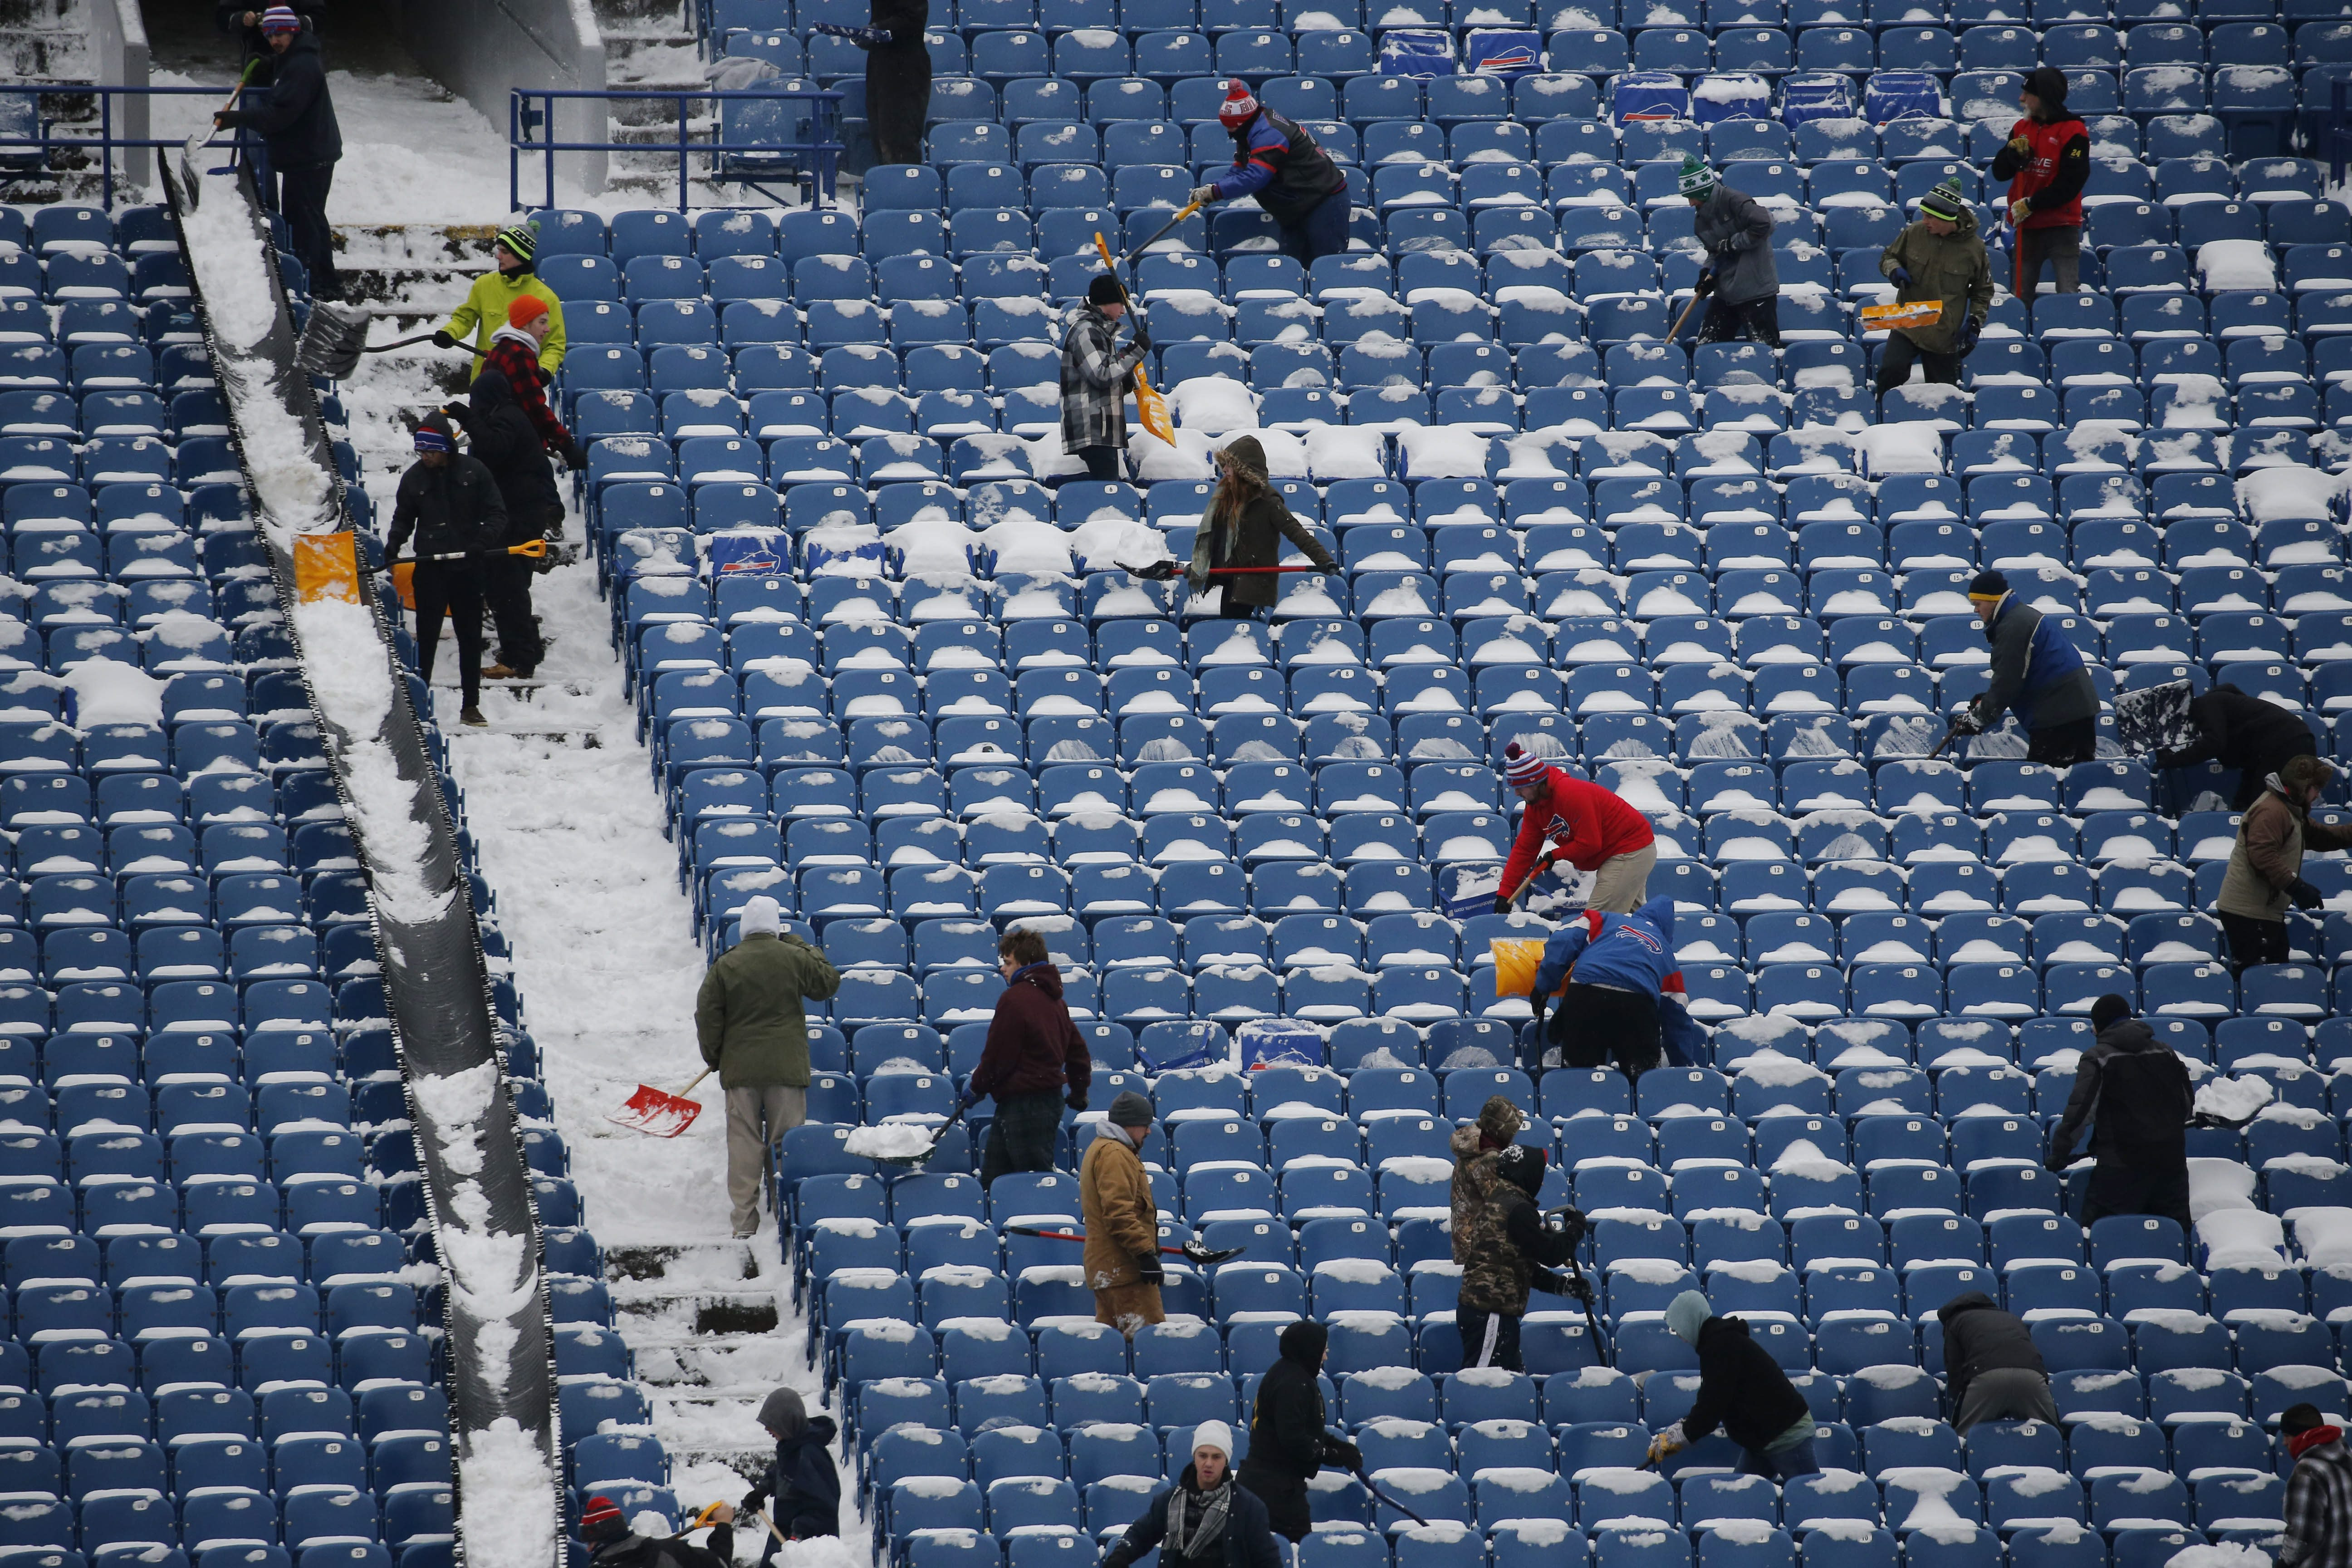 A shovel brigade clears snow from the stands in January at what was then Ralph Wilson Stadium in advance of the final game of the 2015-16 season. (Derek Gee/Buffalo News)